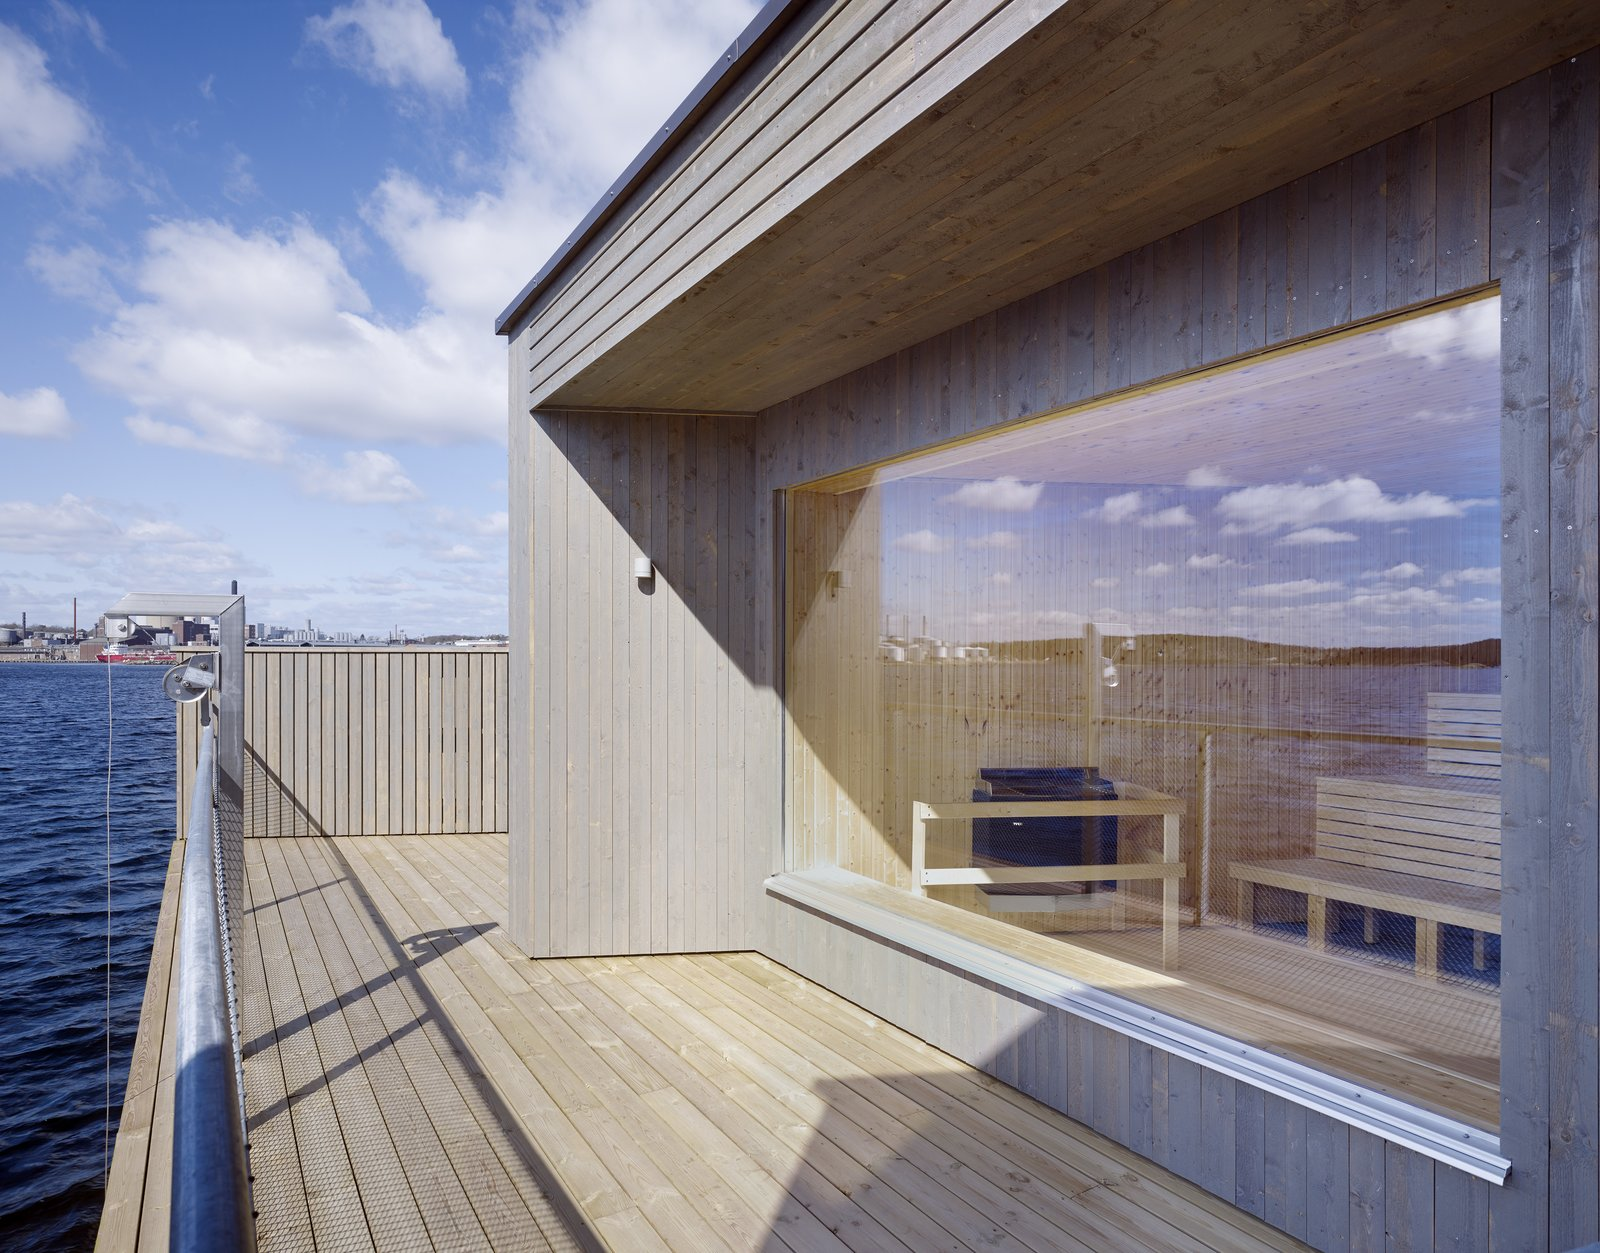 Outdoor and Wood Patio, Porch, Deck  Photo 3 of 6 in A Swedish Coastal Town Commissions an Otherworldly Bathhouse